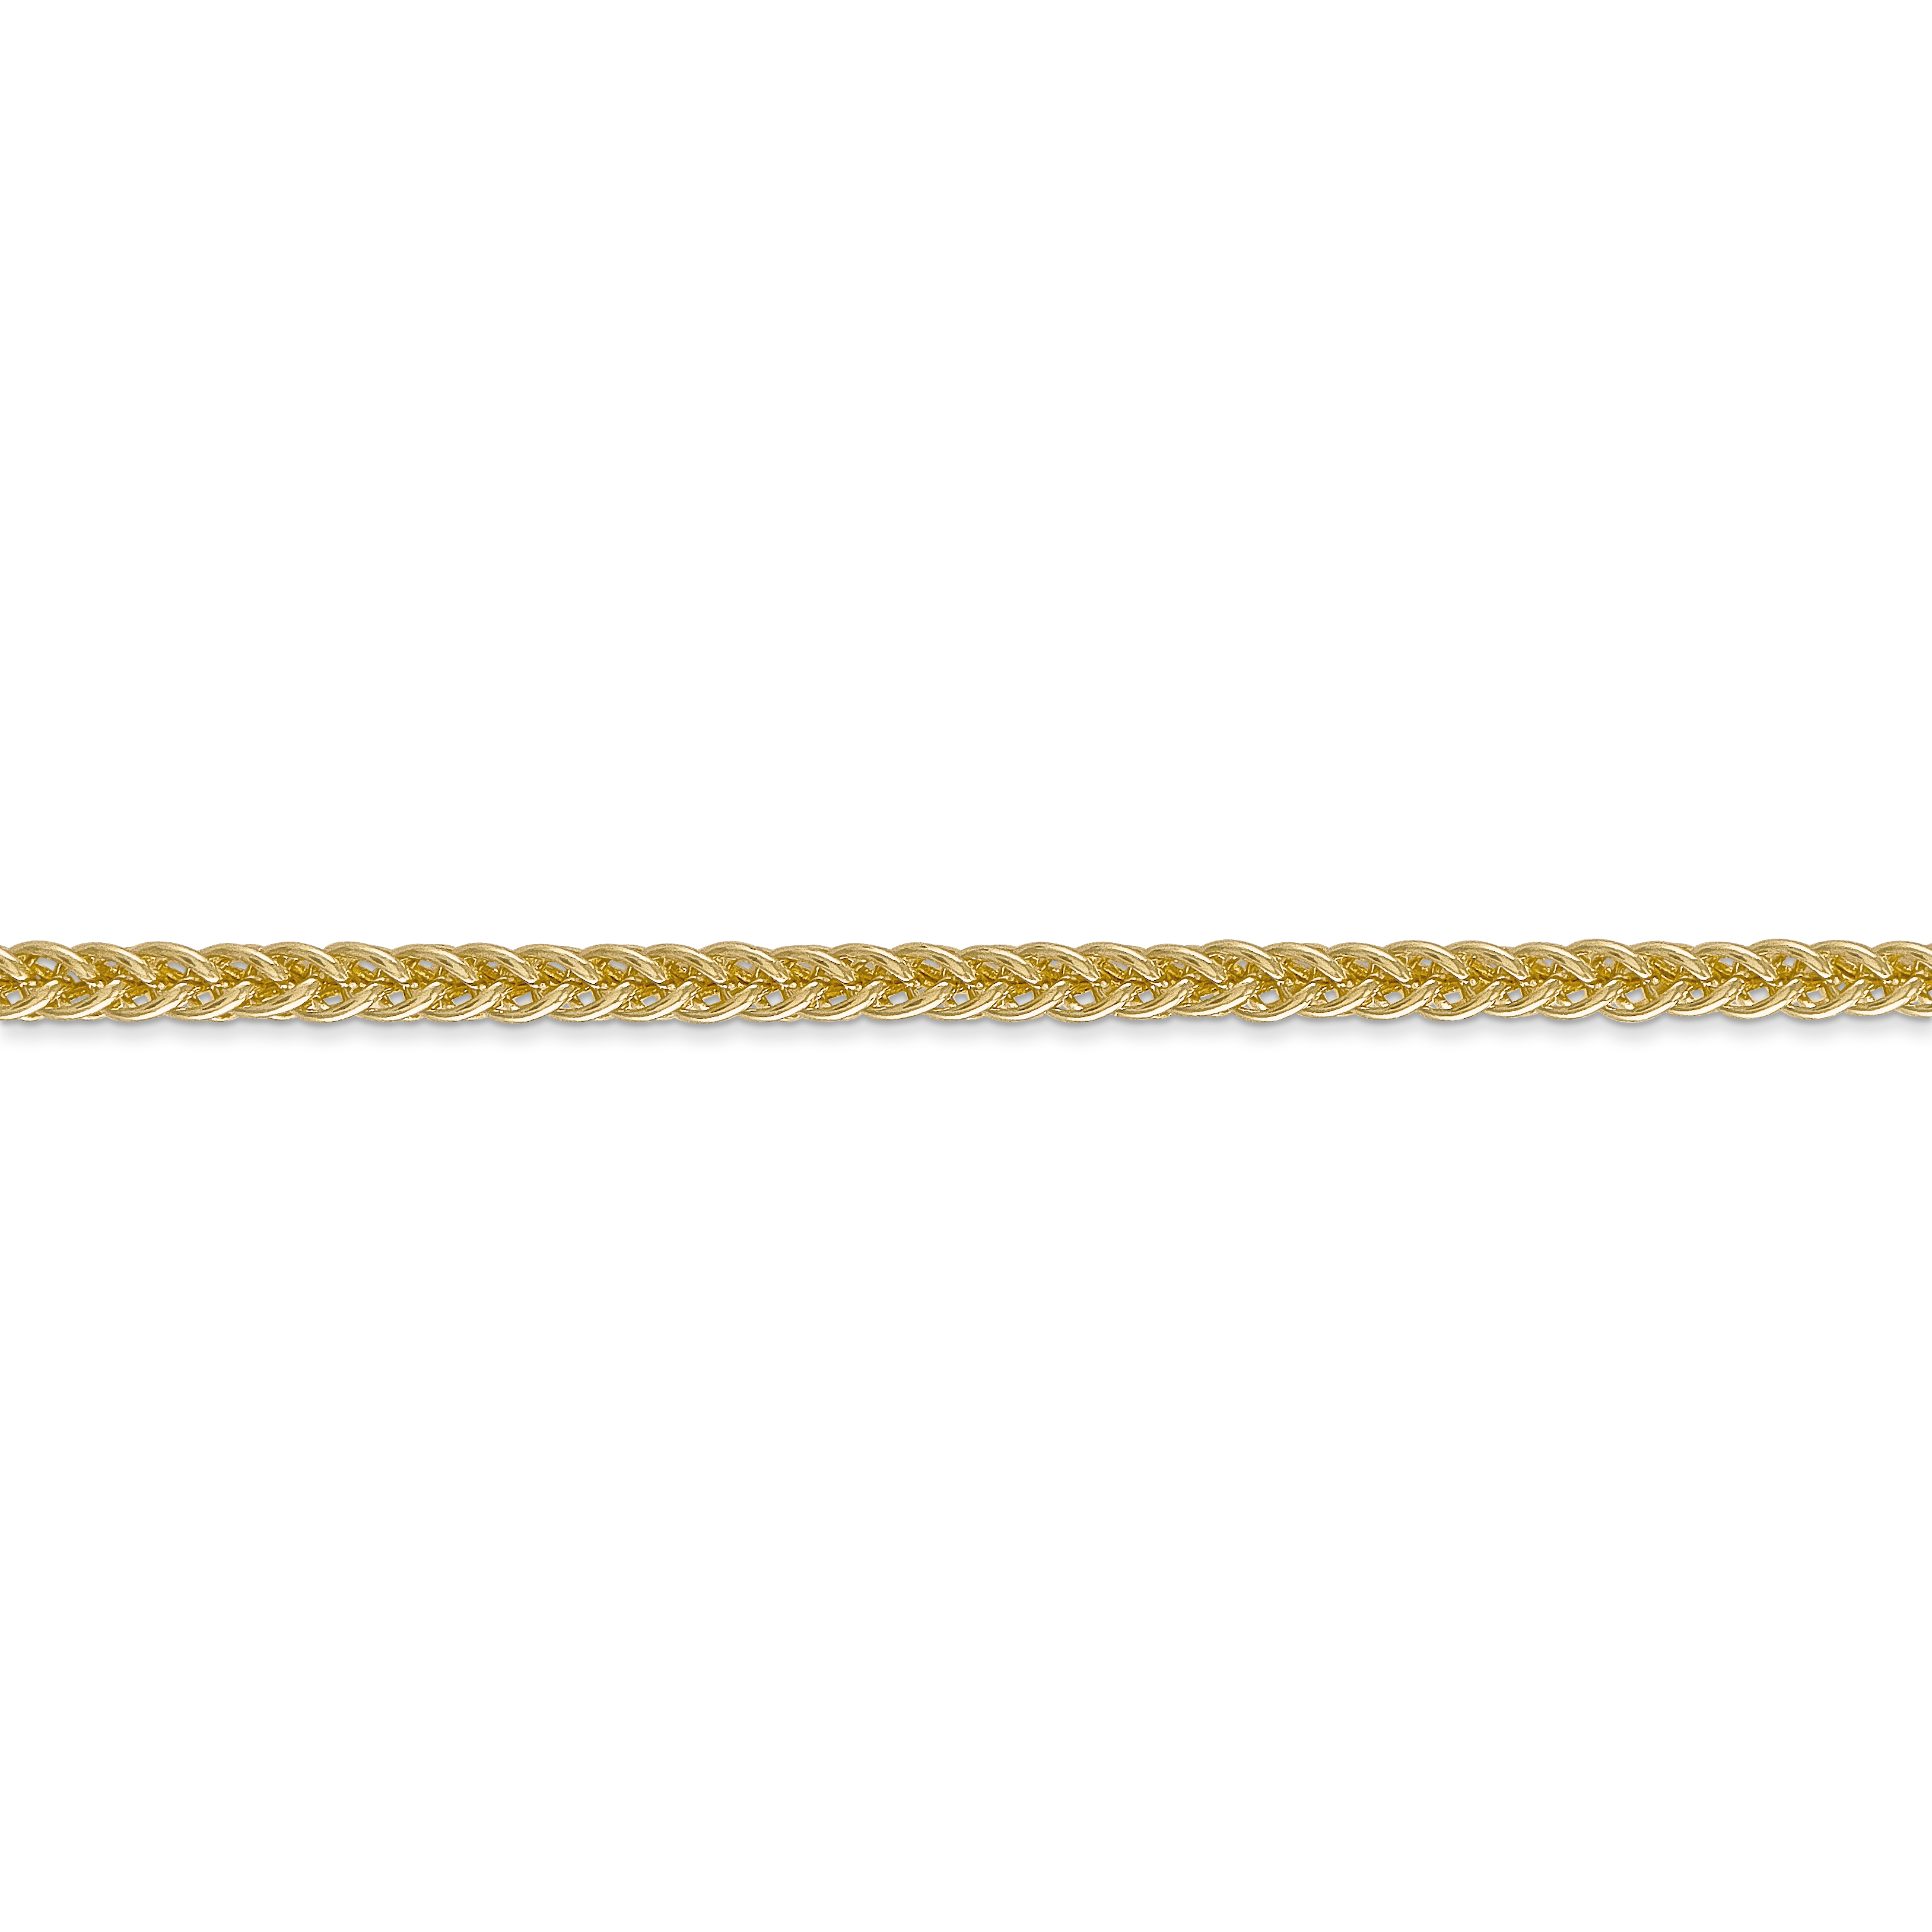 14K Yellow Gold 2.60mm Semi-solid 3-Wire Wheat Chain 18 Inch - image 1 of 5